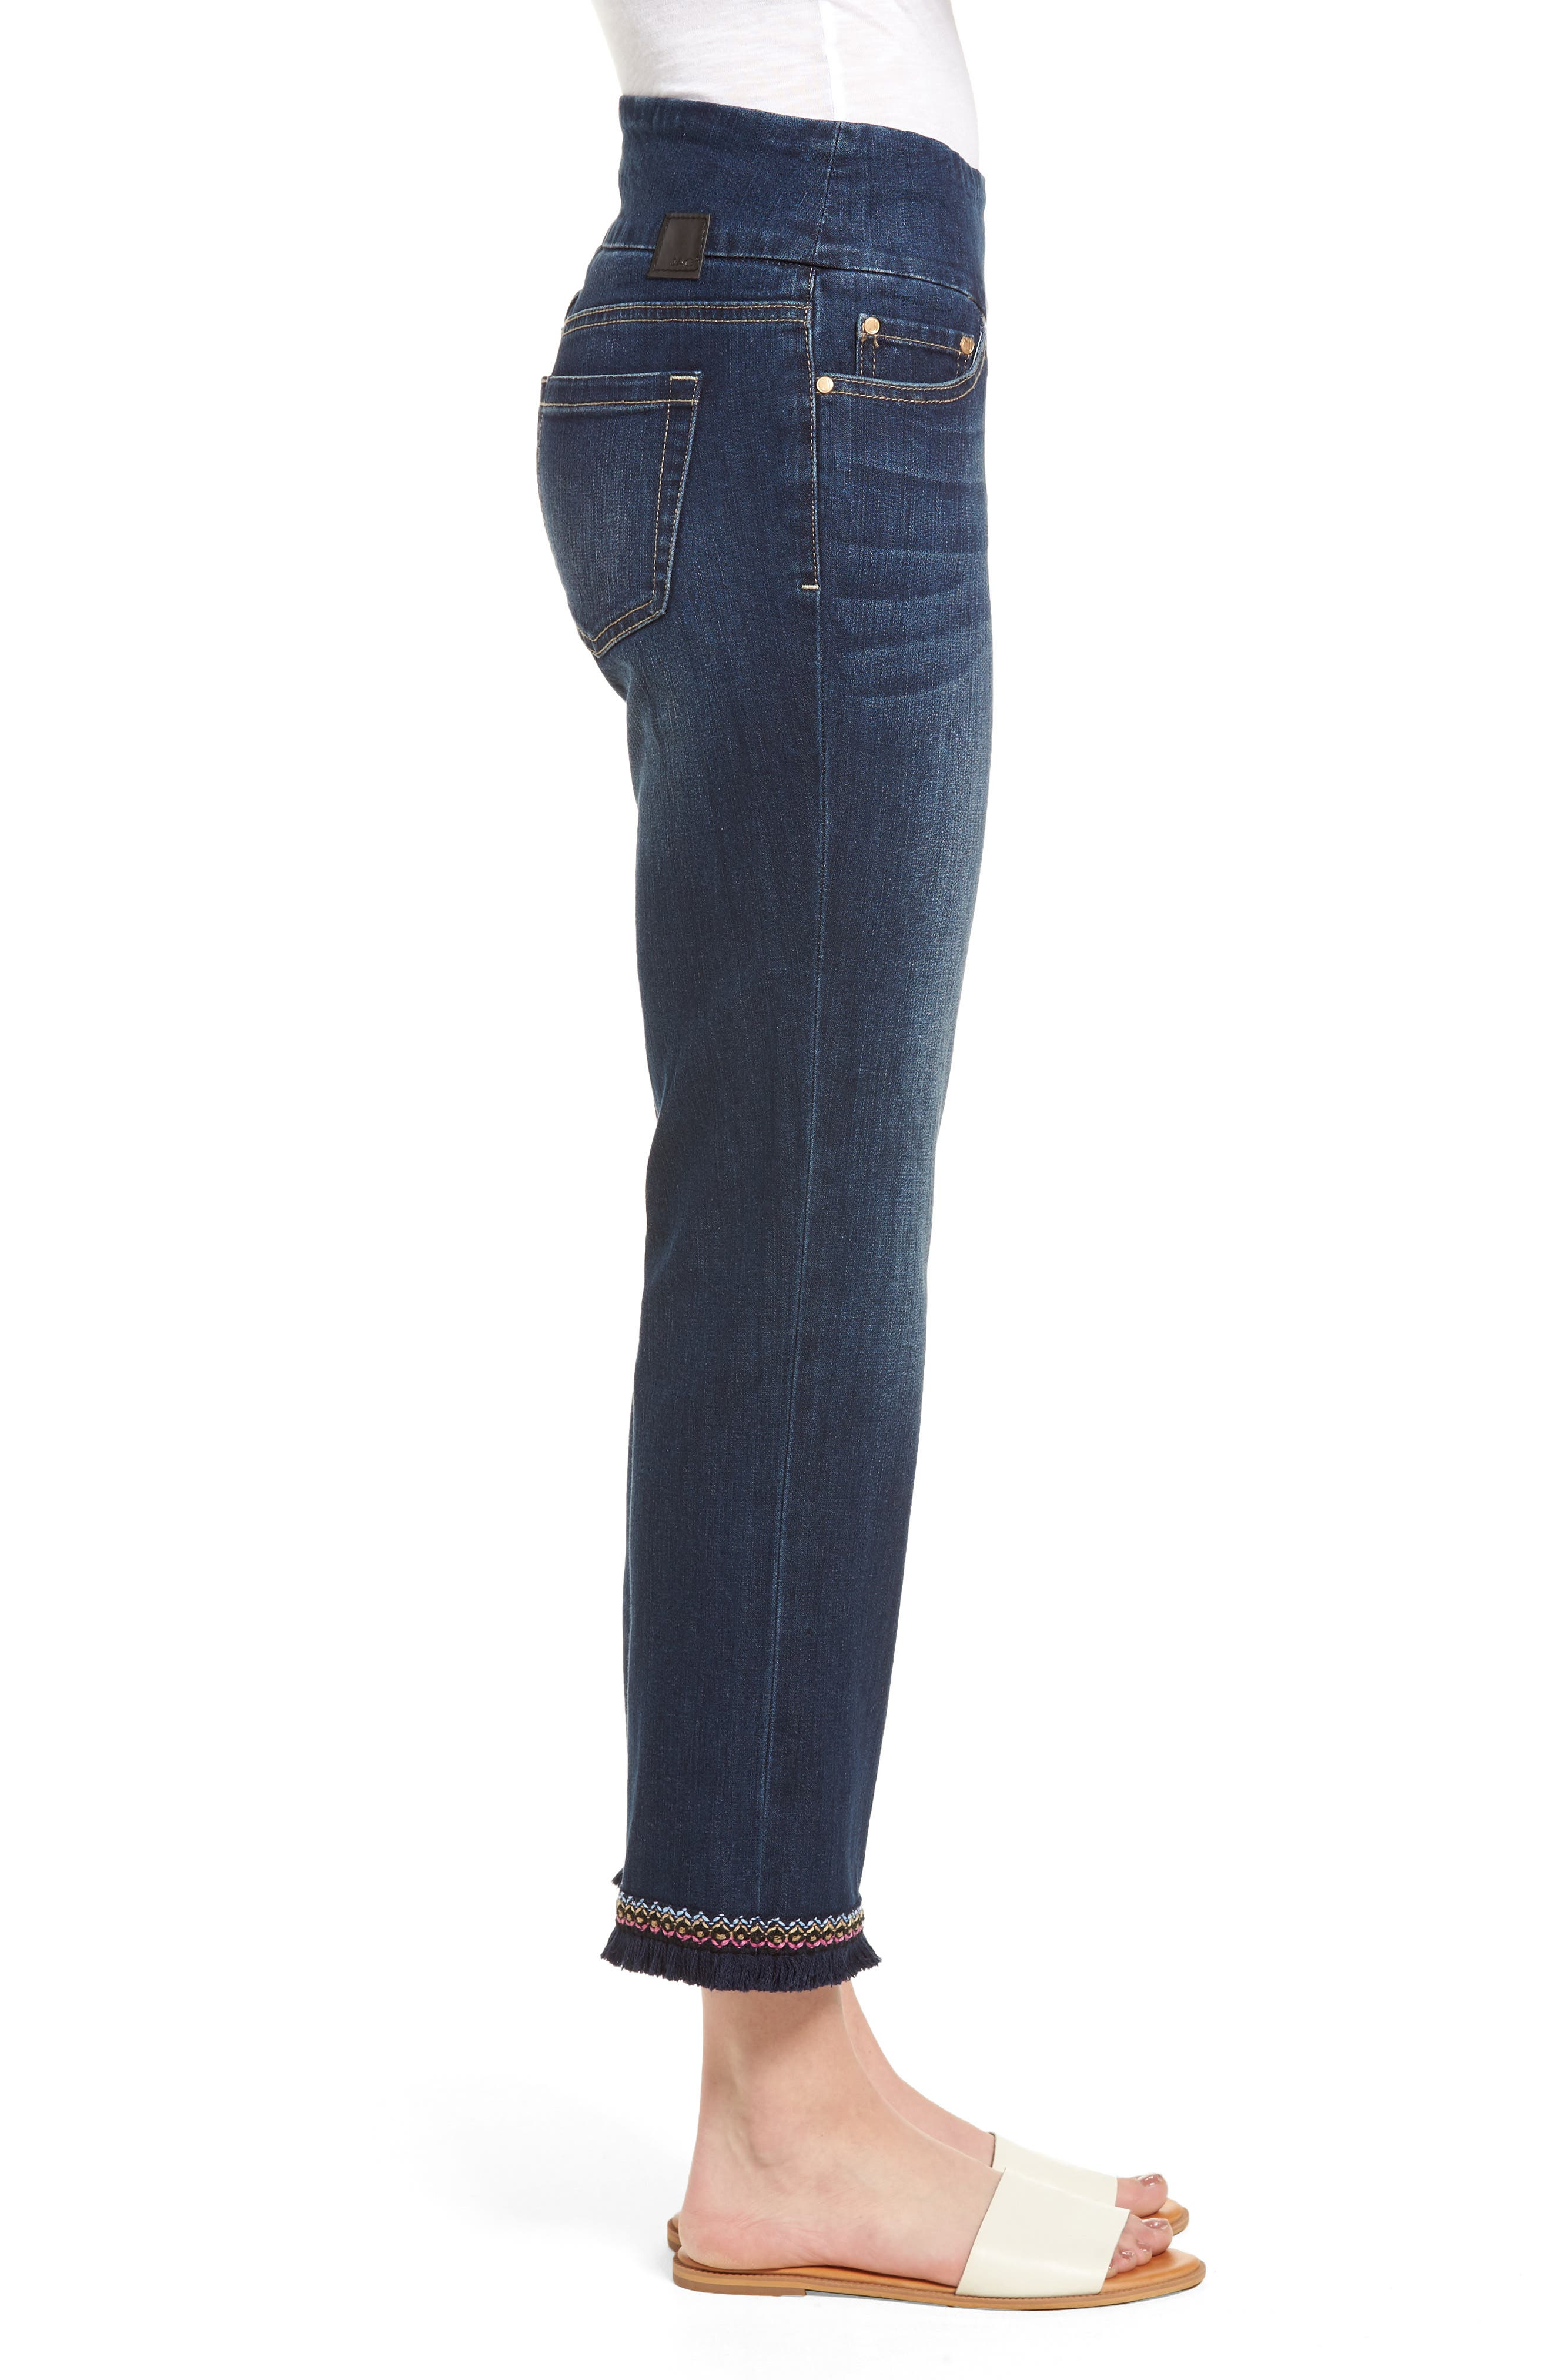 Peri Embroidery Fringe Jeans,                             Alternate thumbnail 3, color,                             420